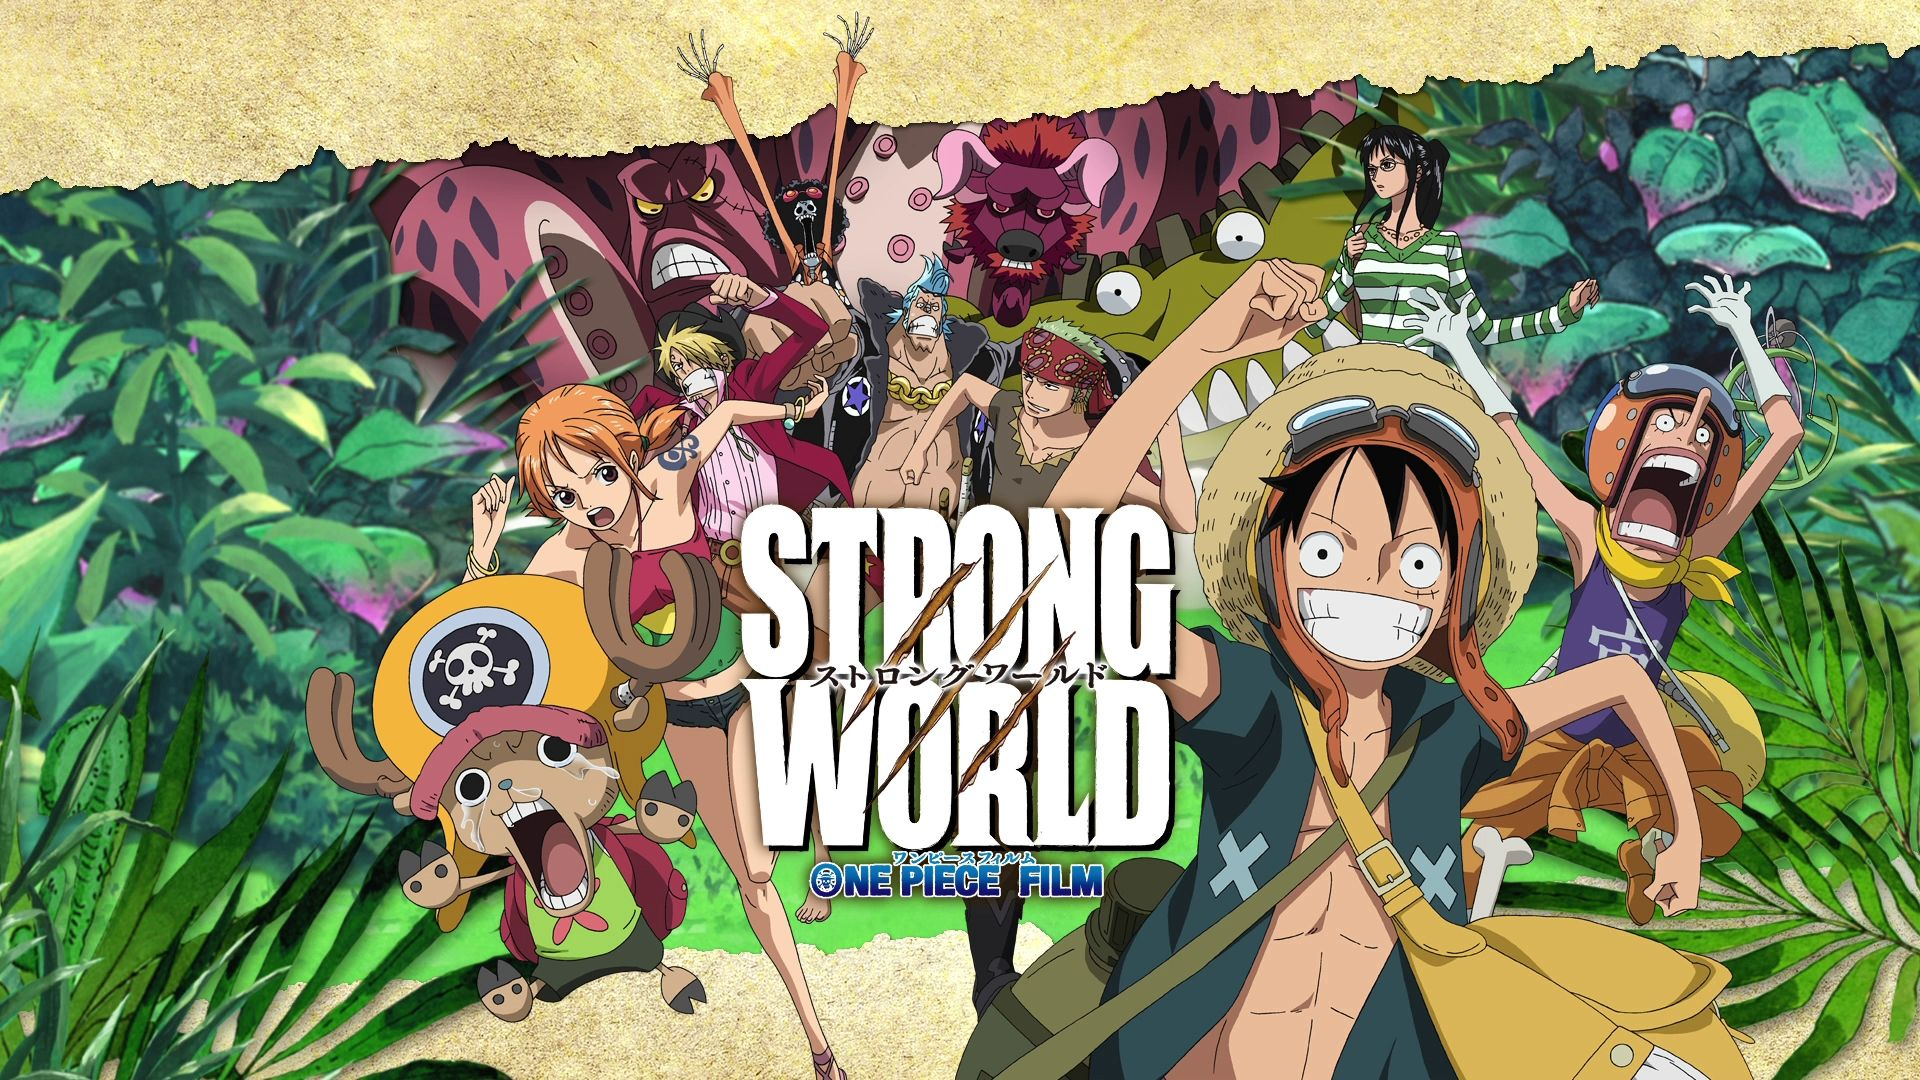 One Piece 1920x1080 8d Wallpaper HD One piece movies